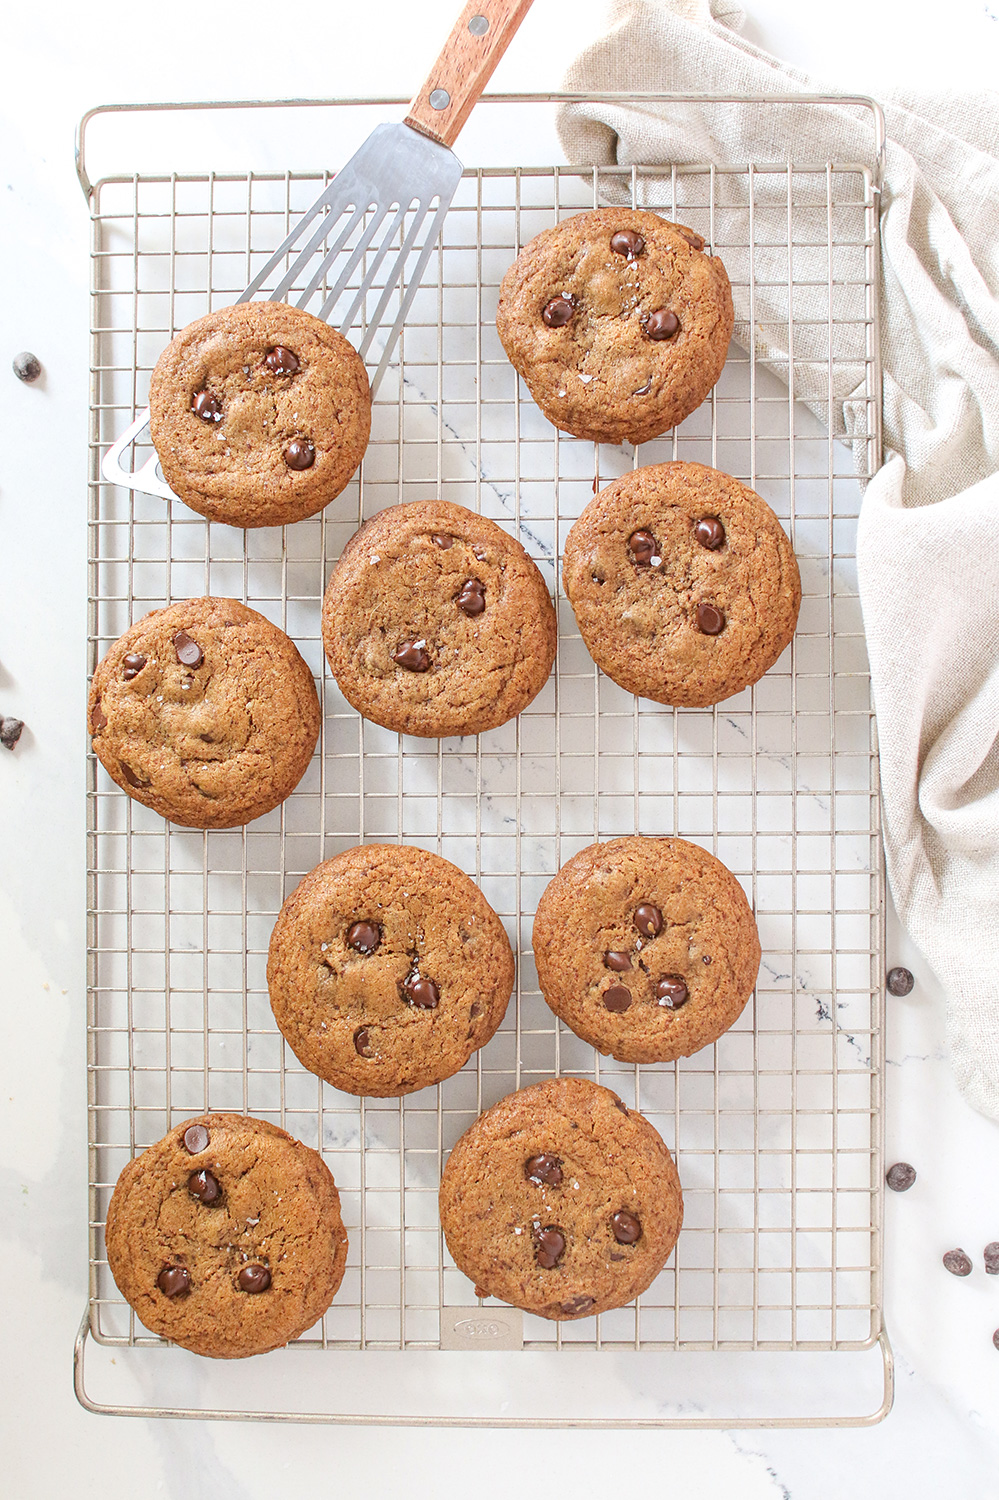 9 chocolate chip cookies on a wire cooing rack with a spatula picking one up